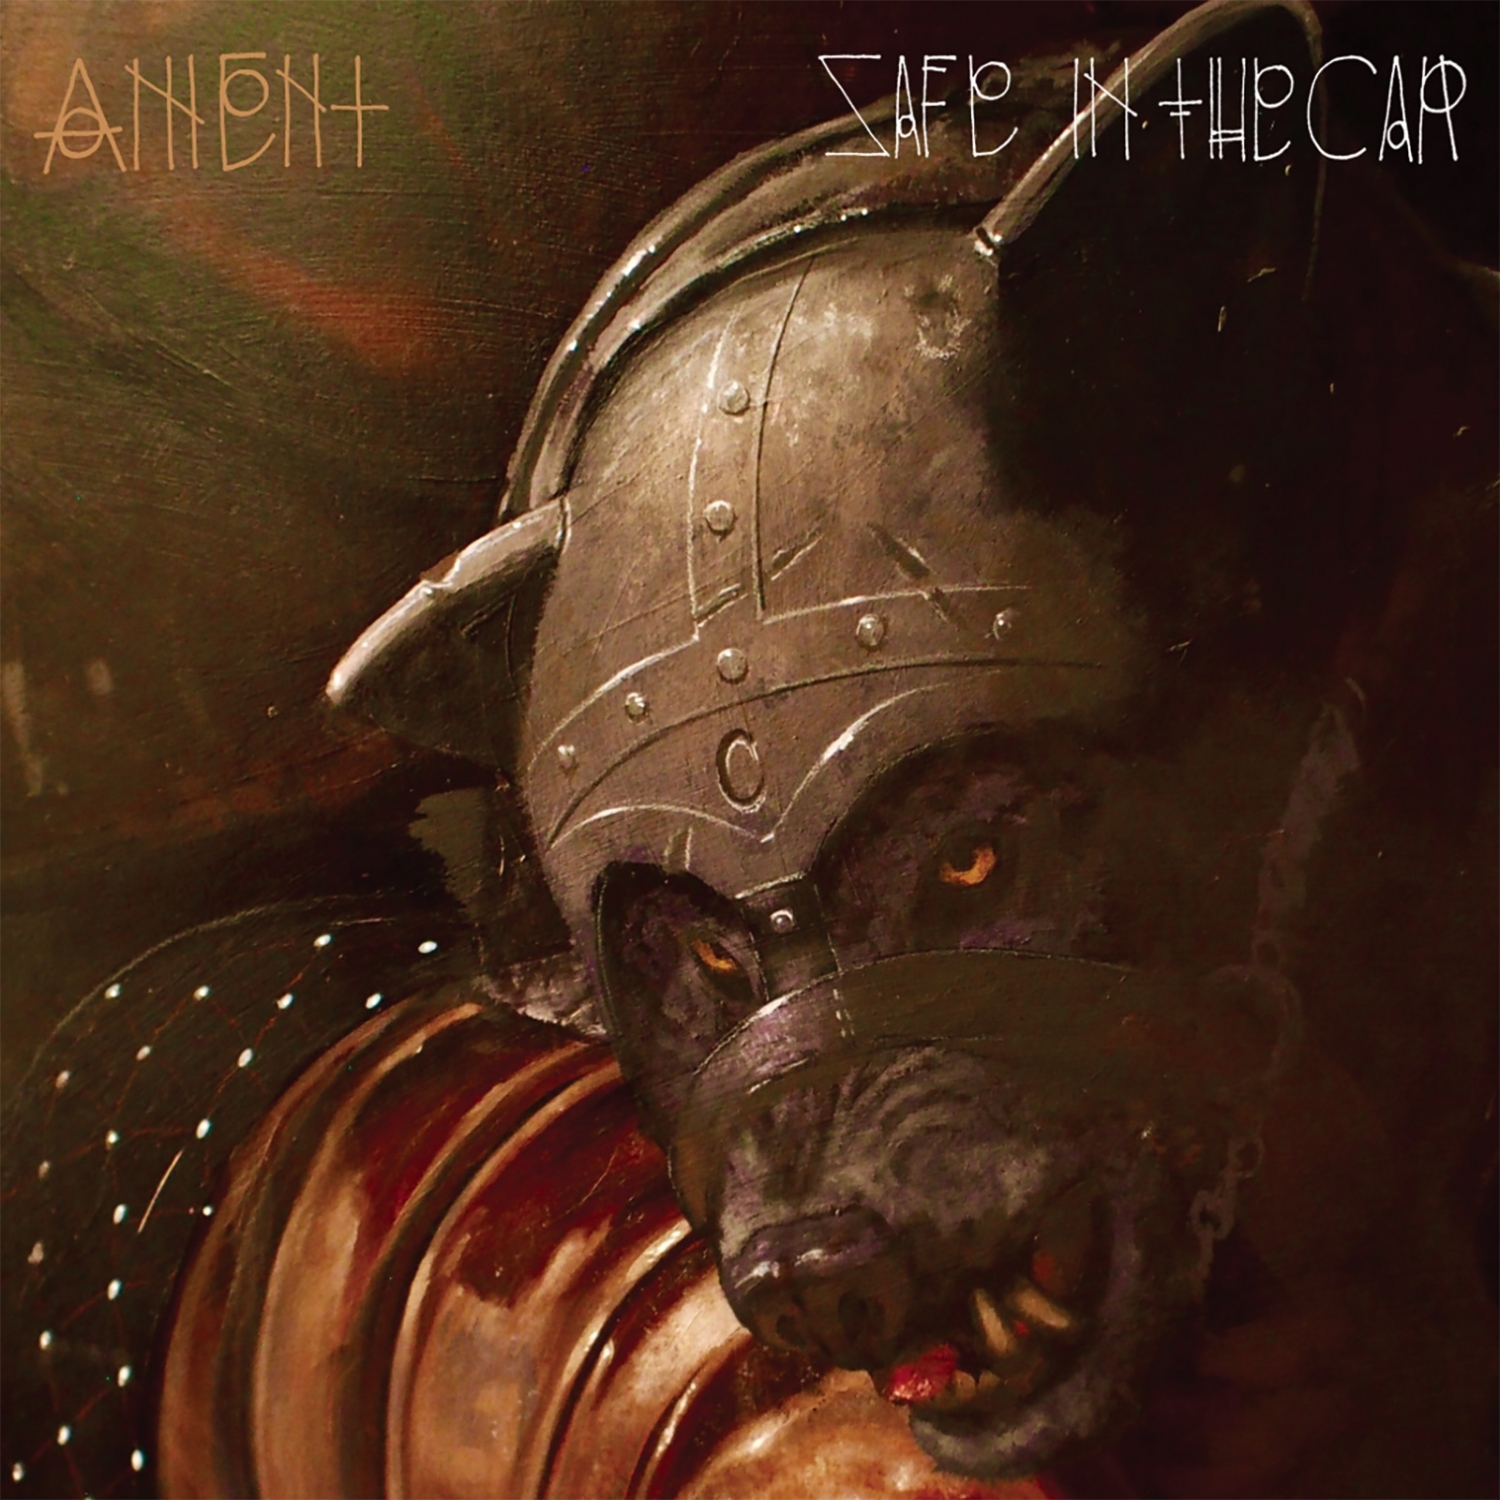 """Ament -- """"Safe in the Car"""" artwork"""